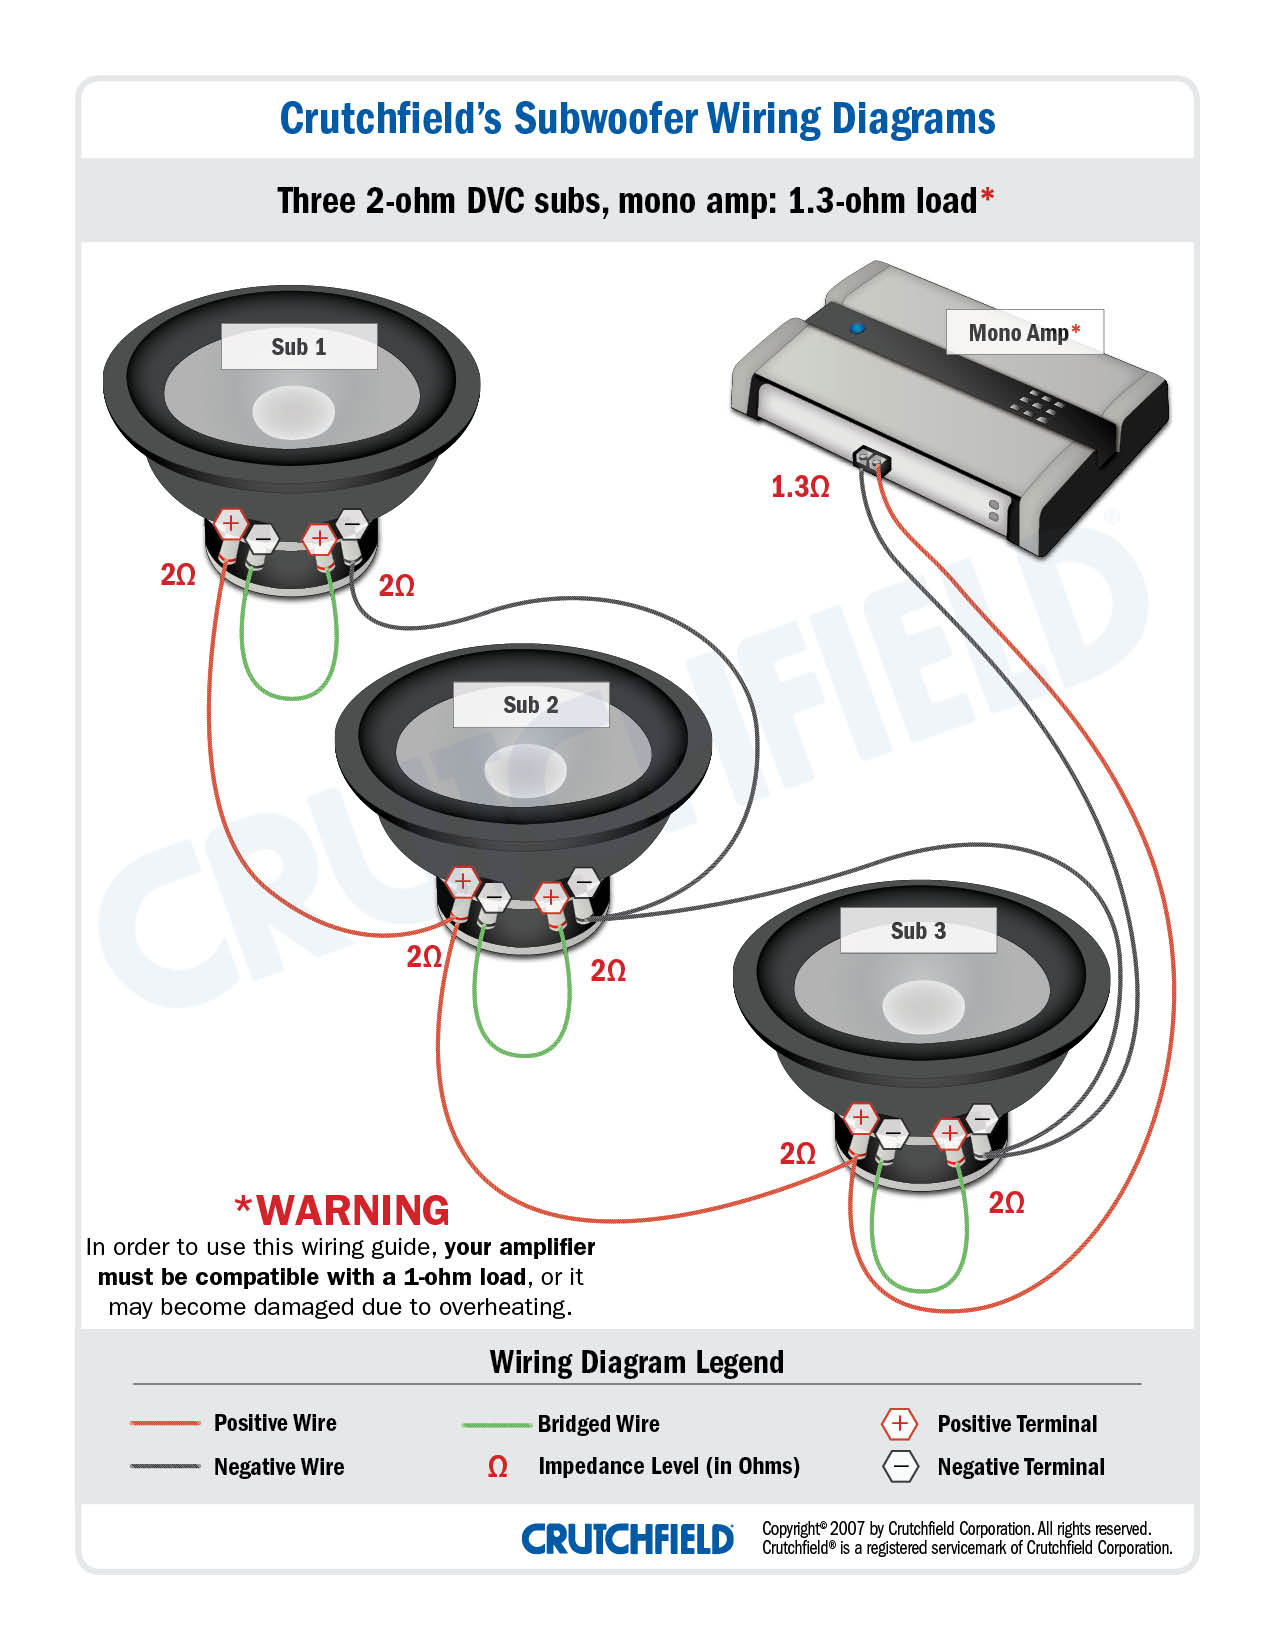 3 DVC 2 ohm mono low imp subwoofer wiring diagrams 2 amps 2 subs wiring diagram at alyssarenee.co